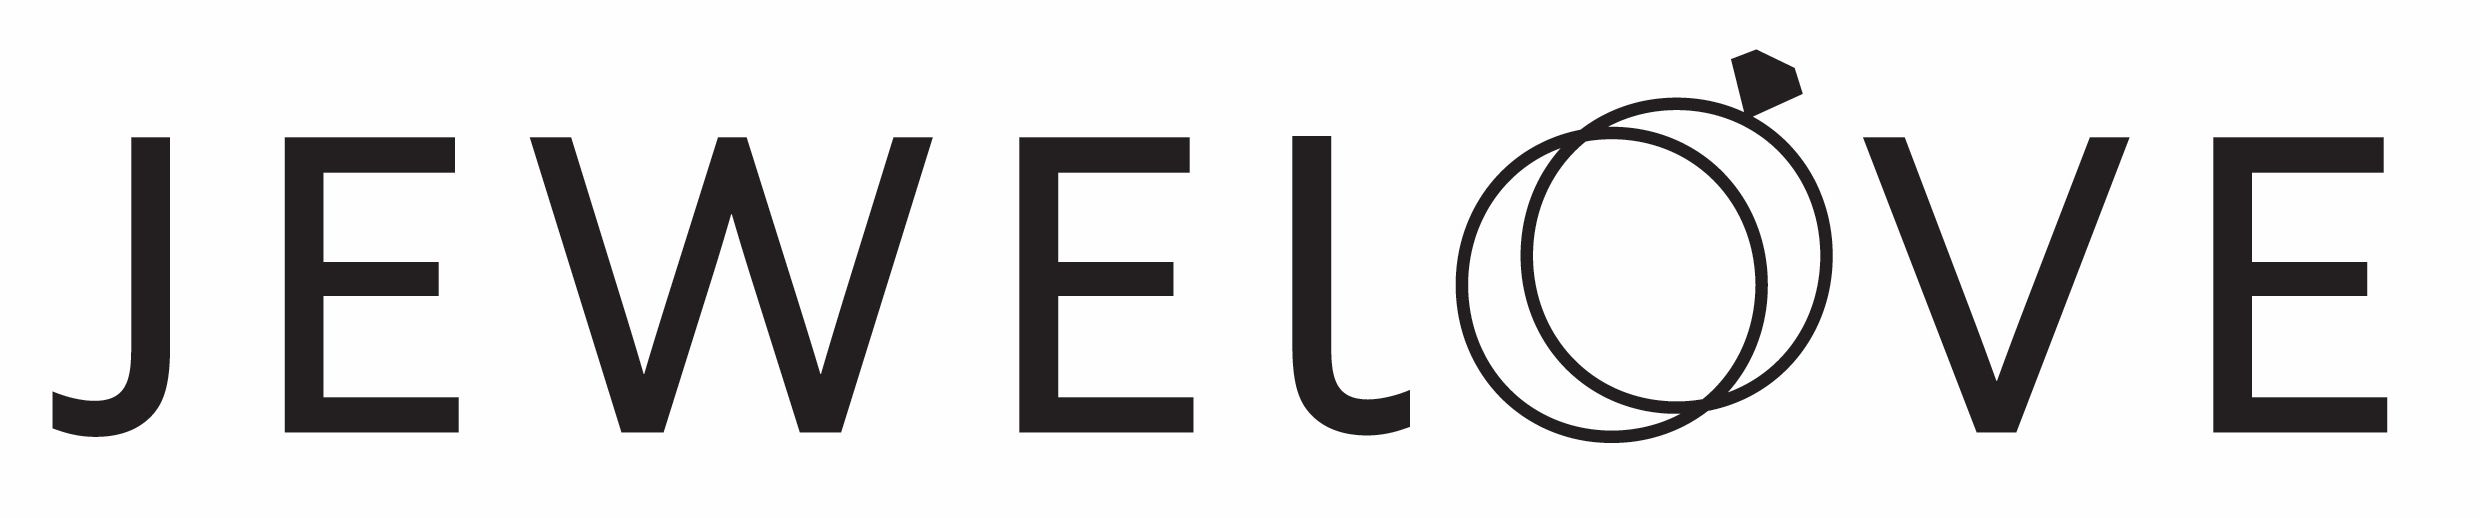 Jewelove Logo